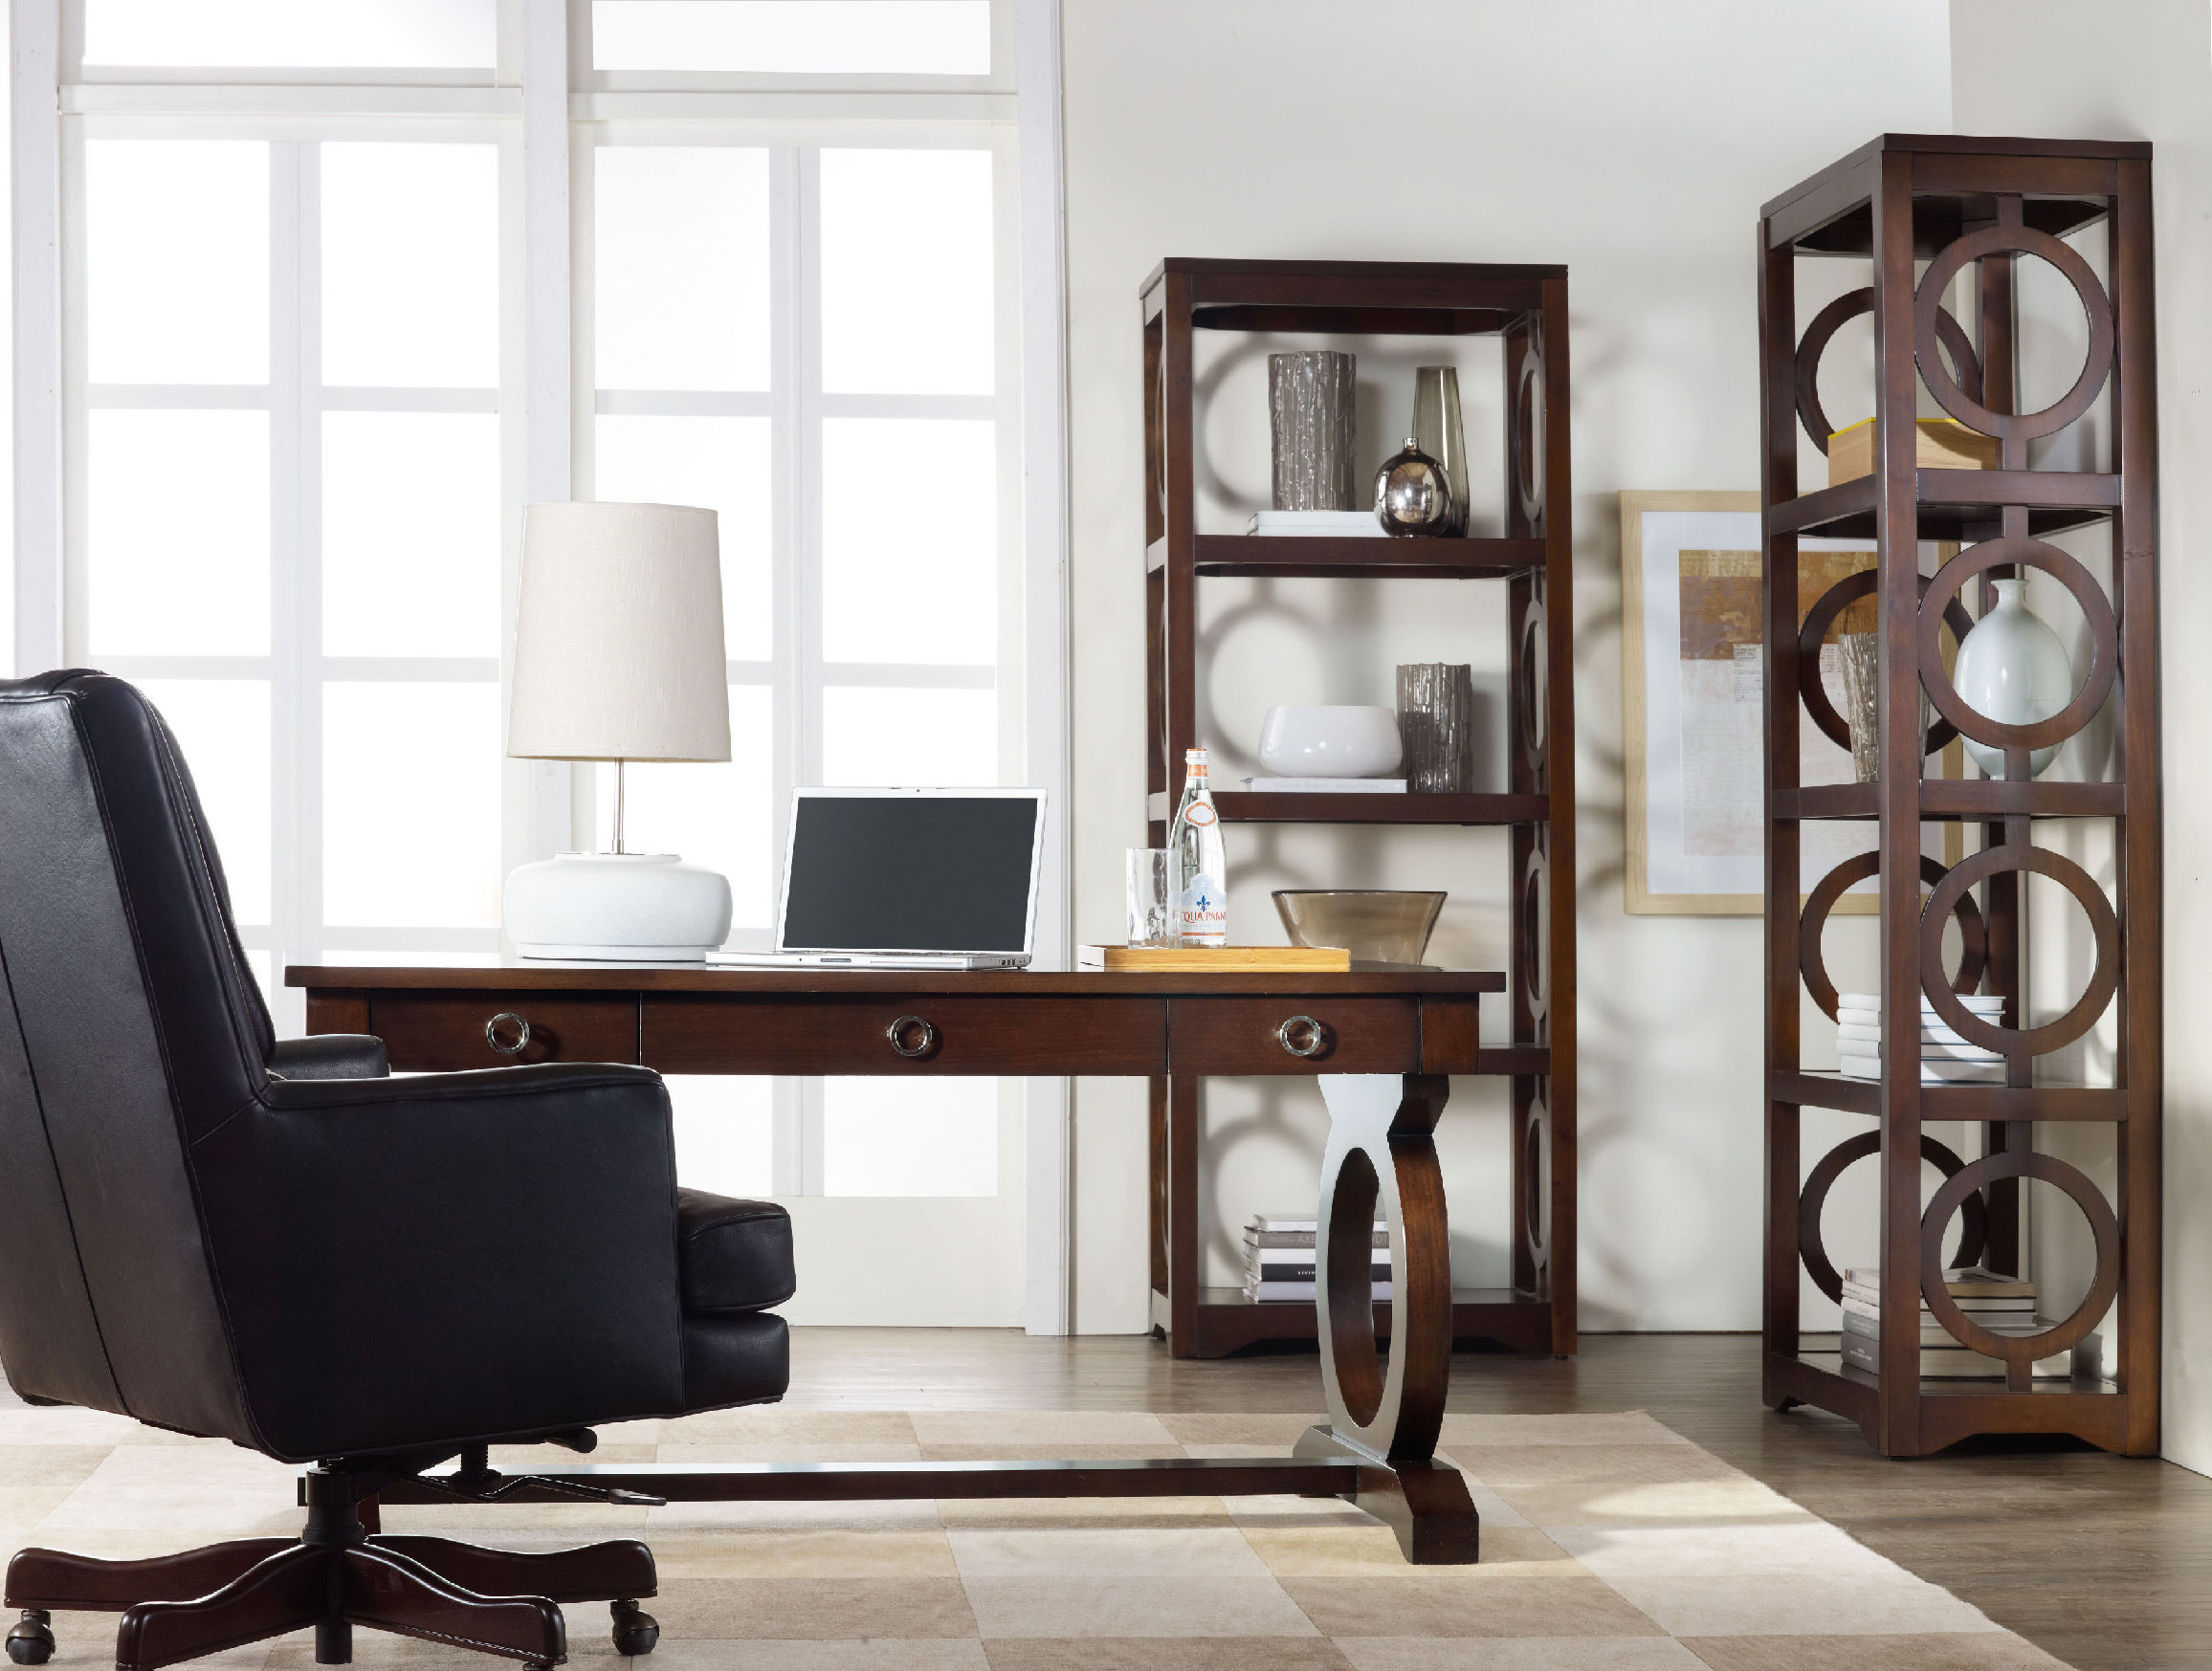 Best ideas about Hooker Office Furniture . Save or Pin Hooker Furniture Home fice Kinsey Etagere 5066 Now.